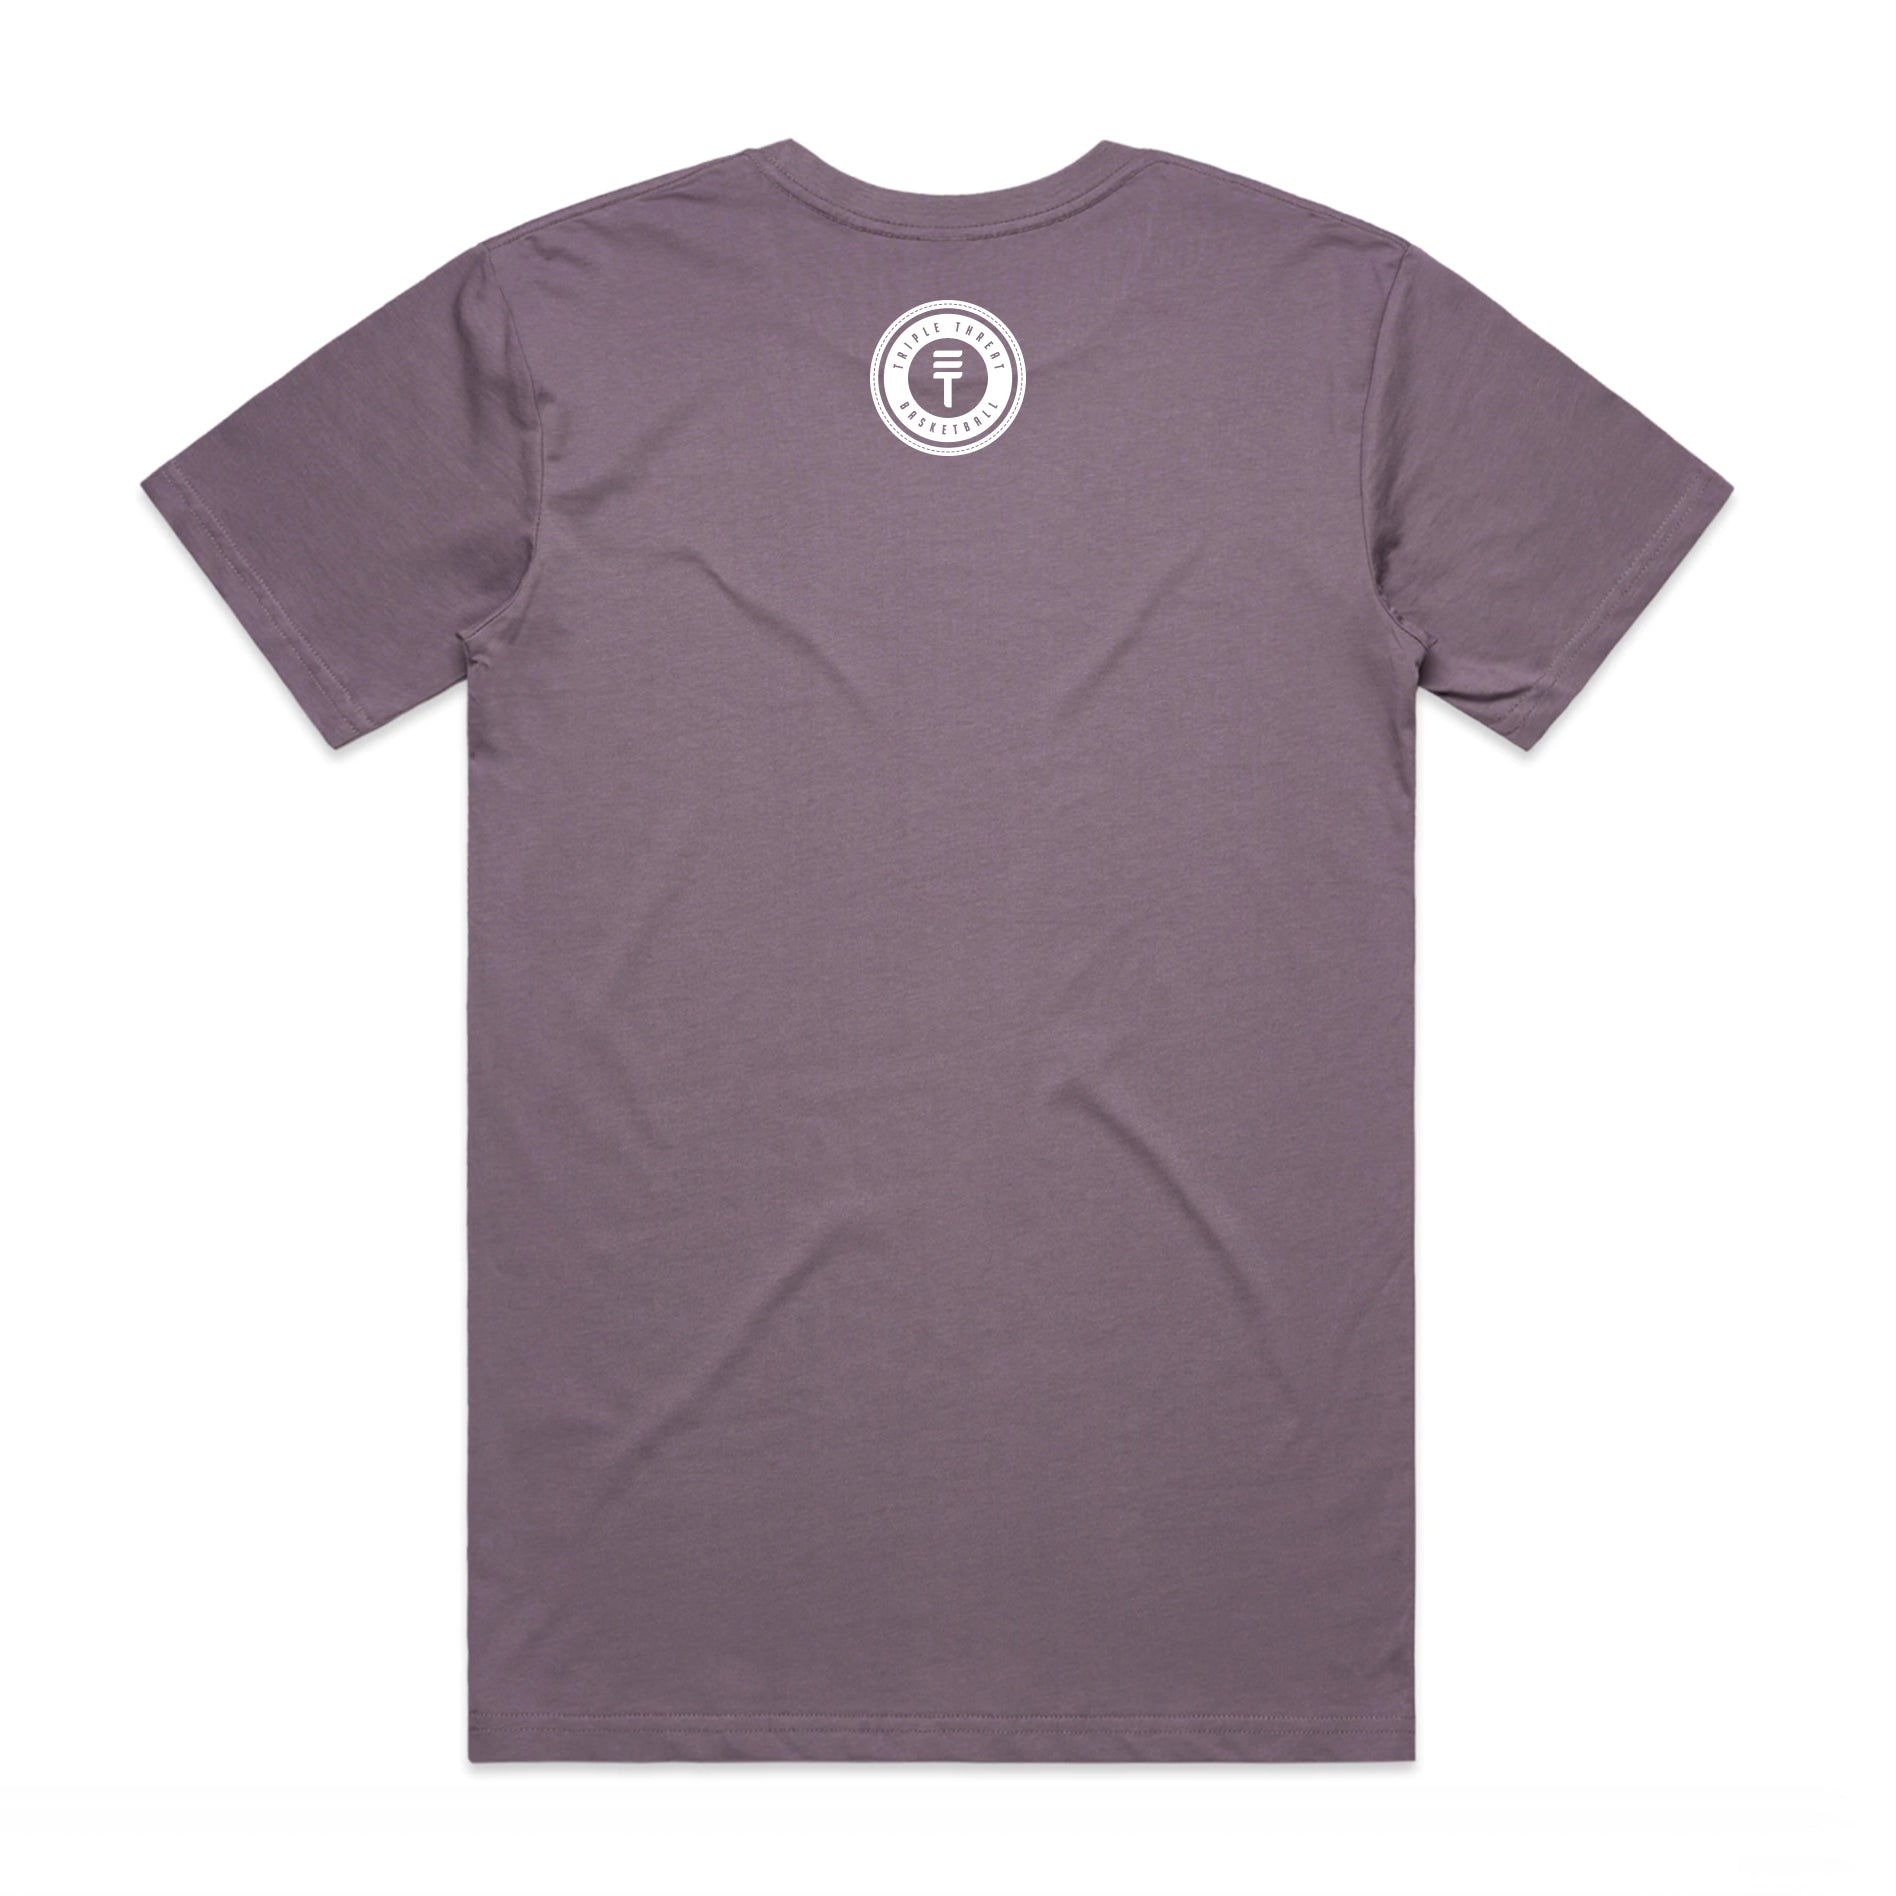 DOTTED T LOGO T-SHIRT - PASTLE PURPLE